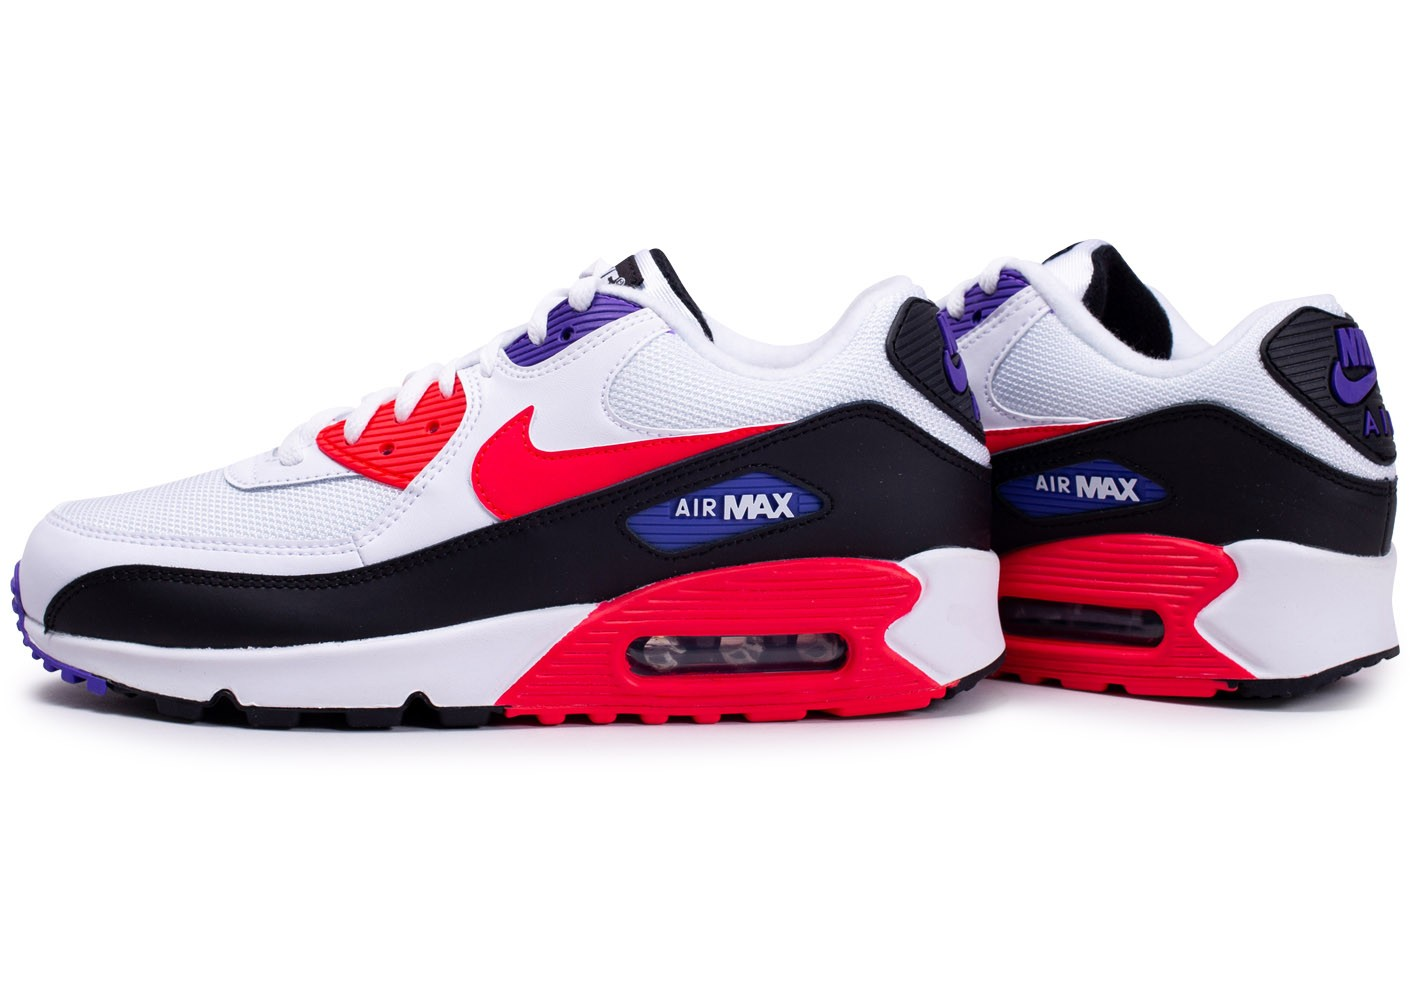 Basket Nike Air Max Max Basket Violet Violet Air Nike Basket